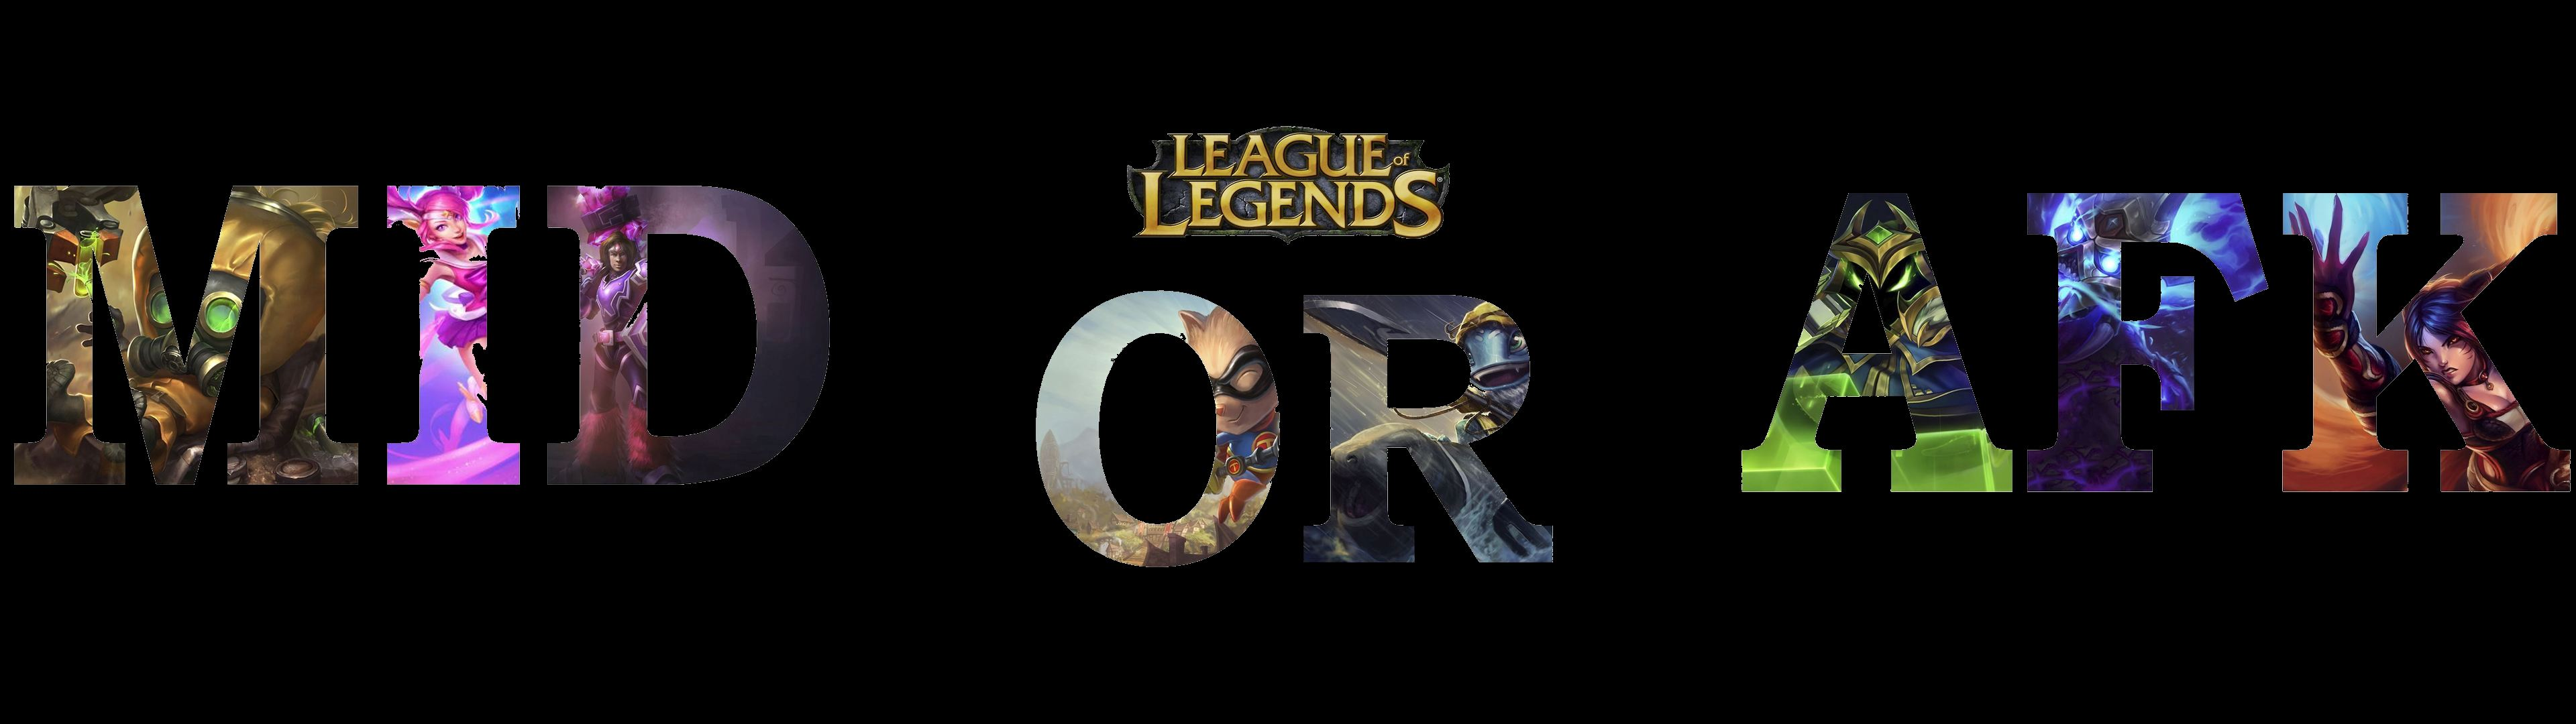 WallpaperFusion-league-of-legends-mid-or-afk-Original-3840b.jpg